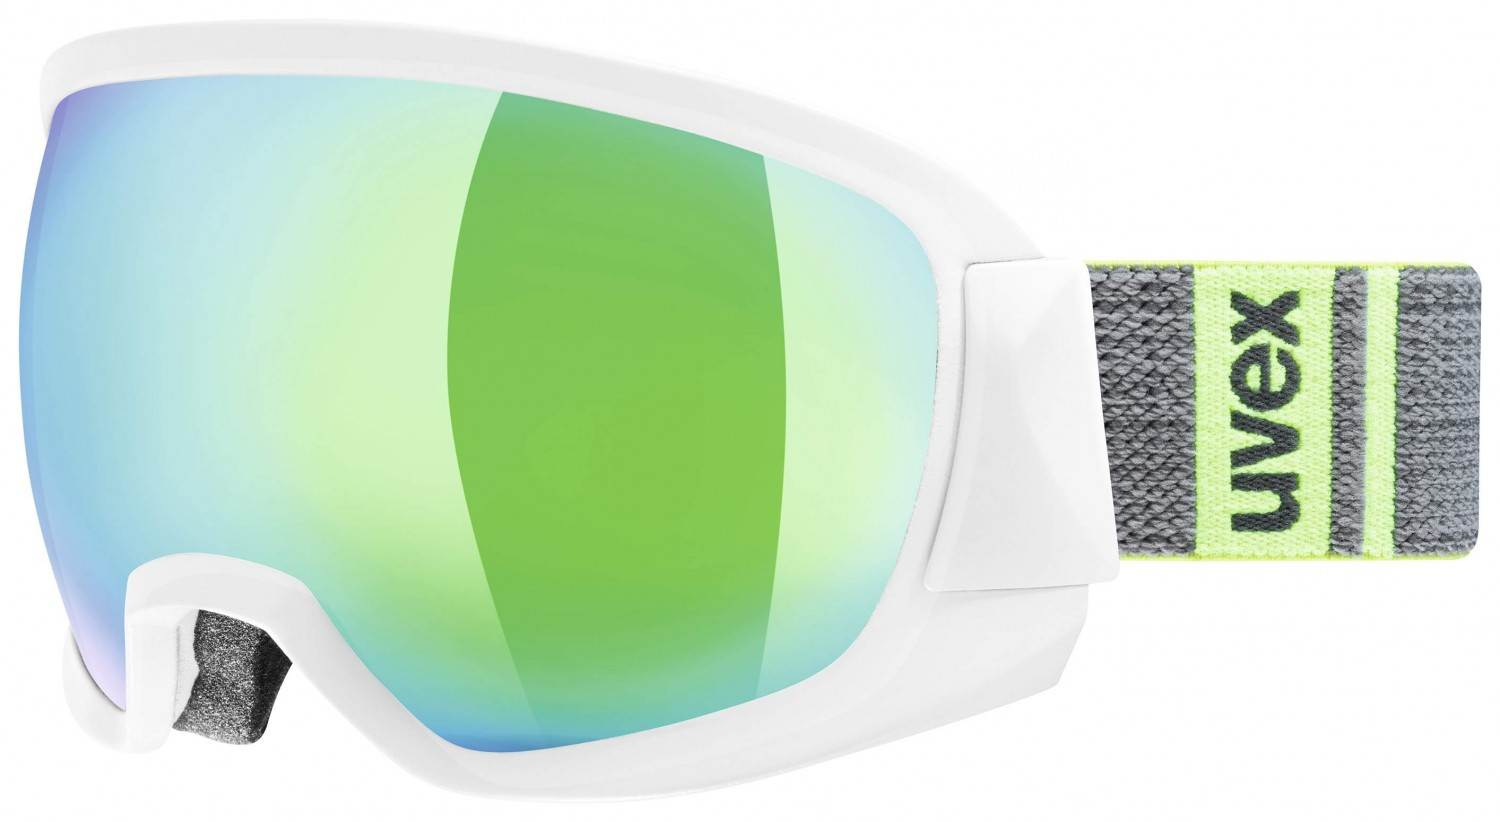 uvex Contest Full Mirror Skibrille (Farbe: 1026 white mat, mirror green/clear)